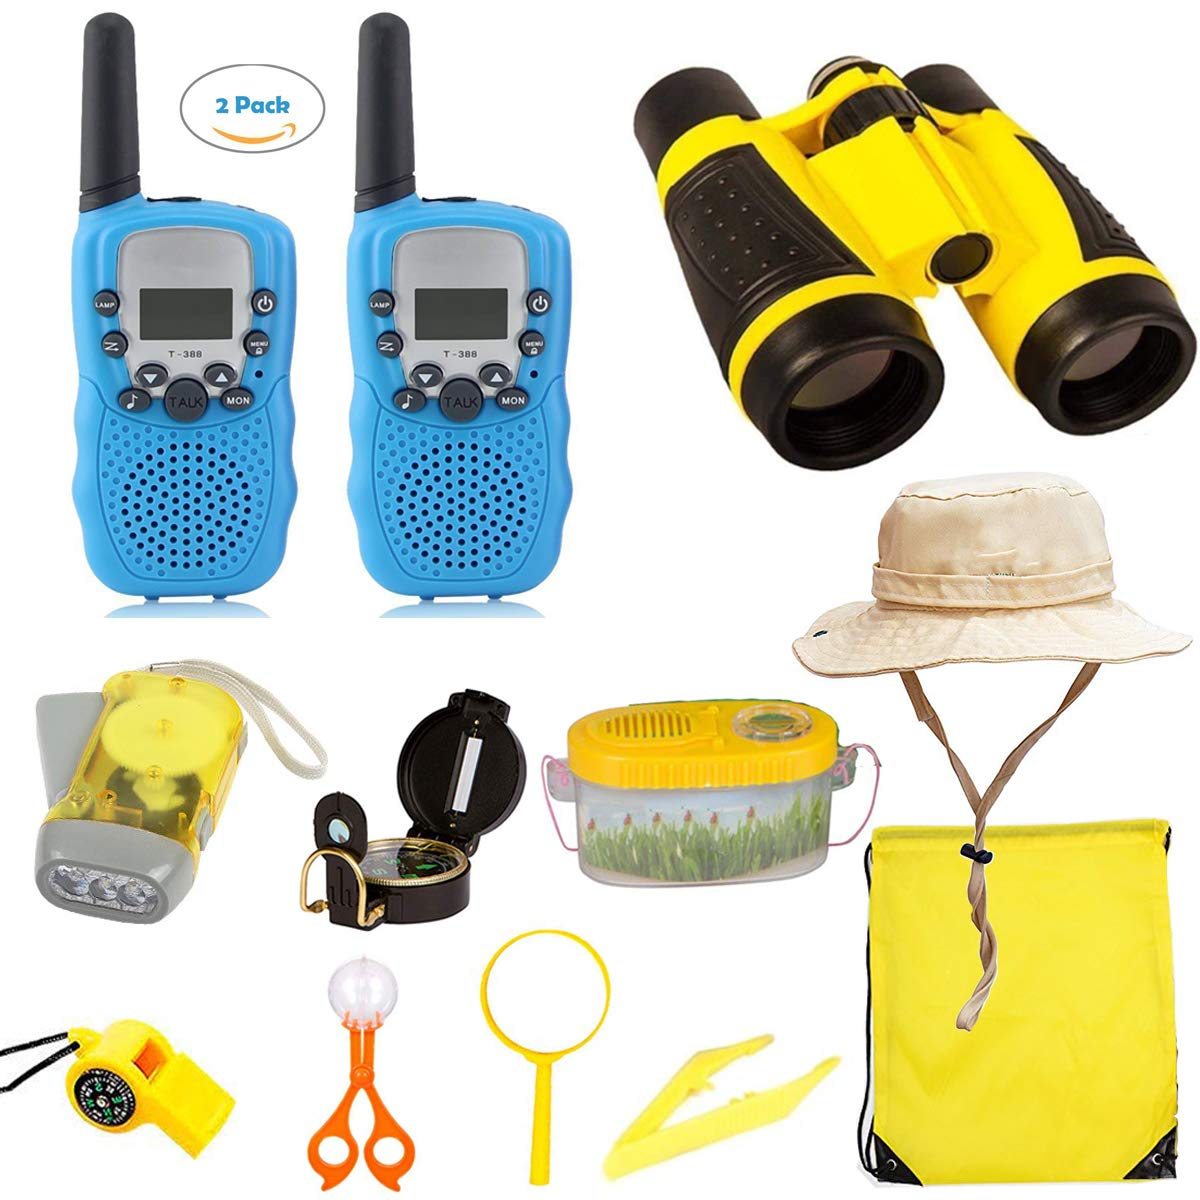 Woltechz Outdoor Toy Explorer Kit for Kids, 2packs Walkie Talkies with 3KM Long Rang 22 Channels 2 Way Radio/ Binoculars for Kids/Flashlight/ Compass and Adventure kit for Boys or Girls by Woltechz (Image #9)